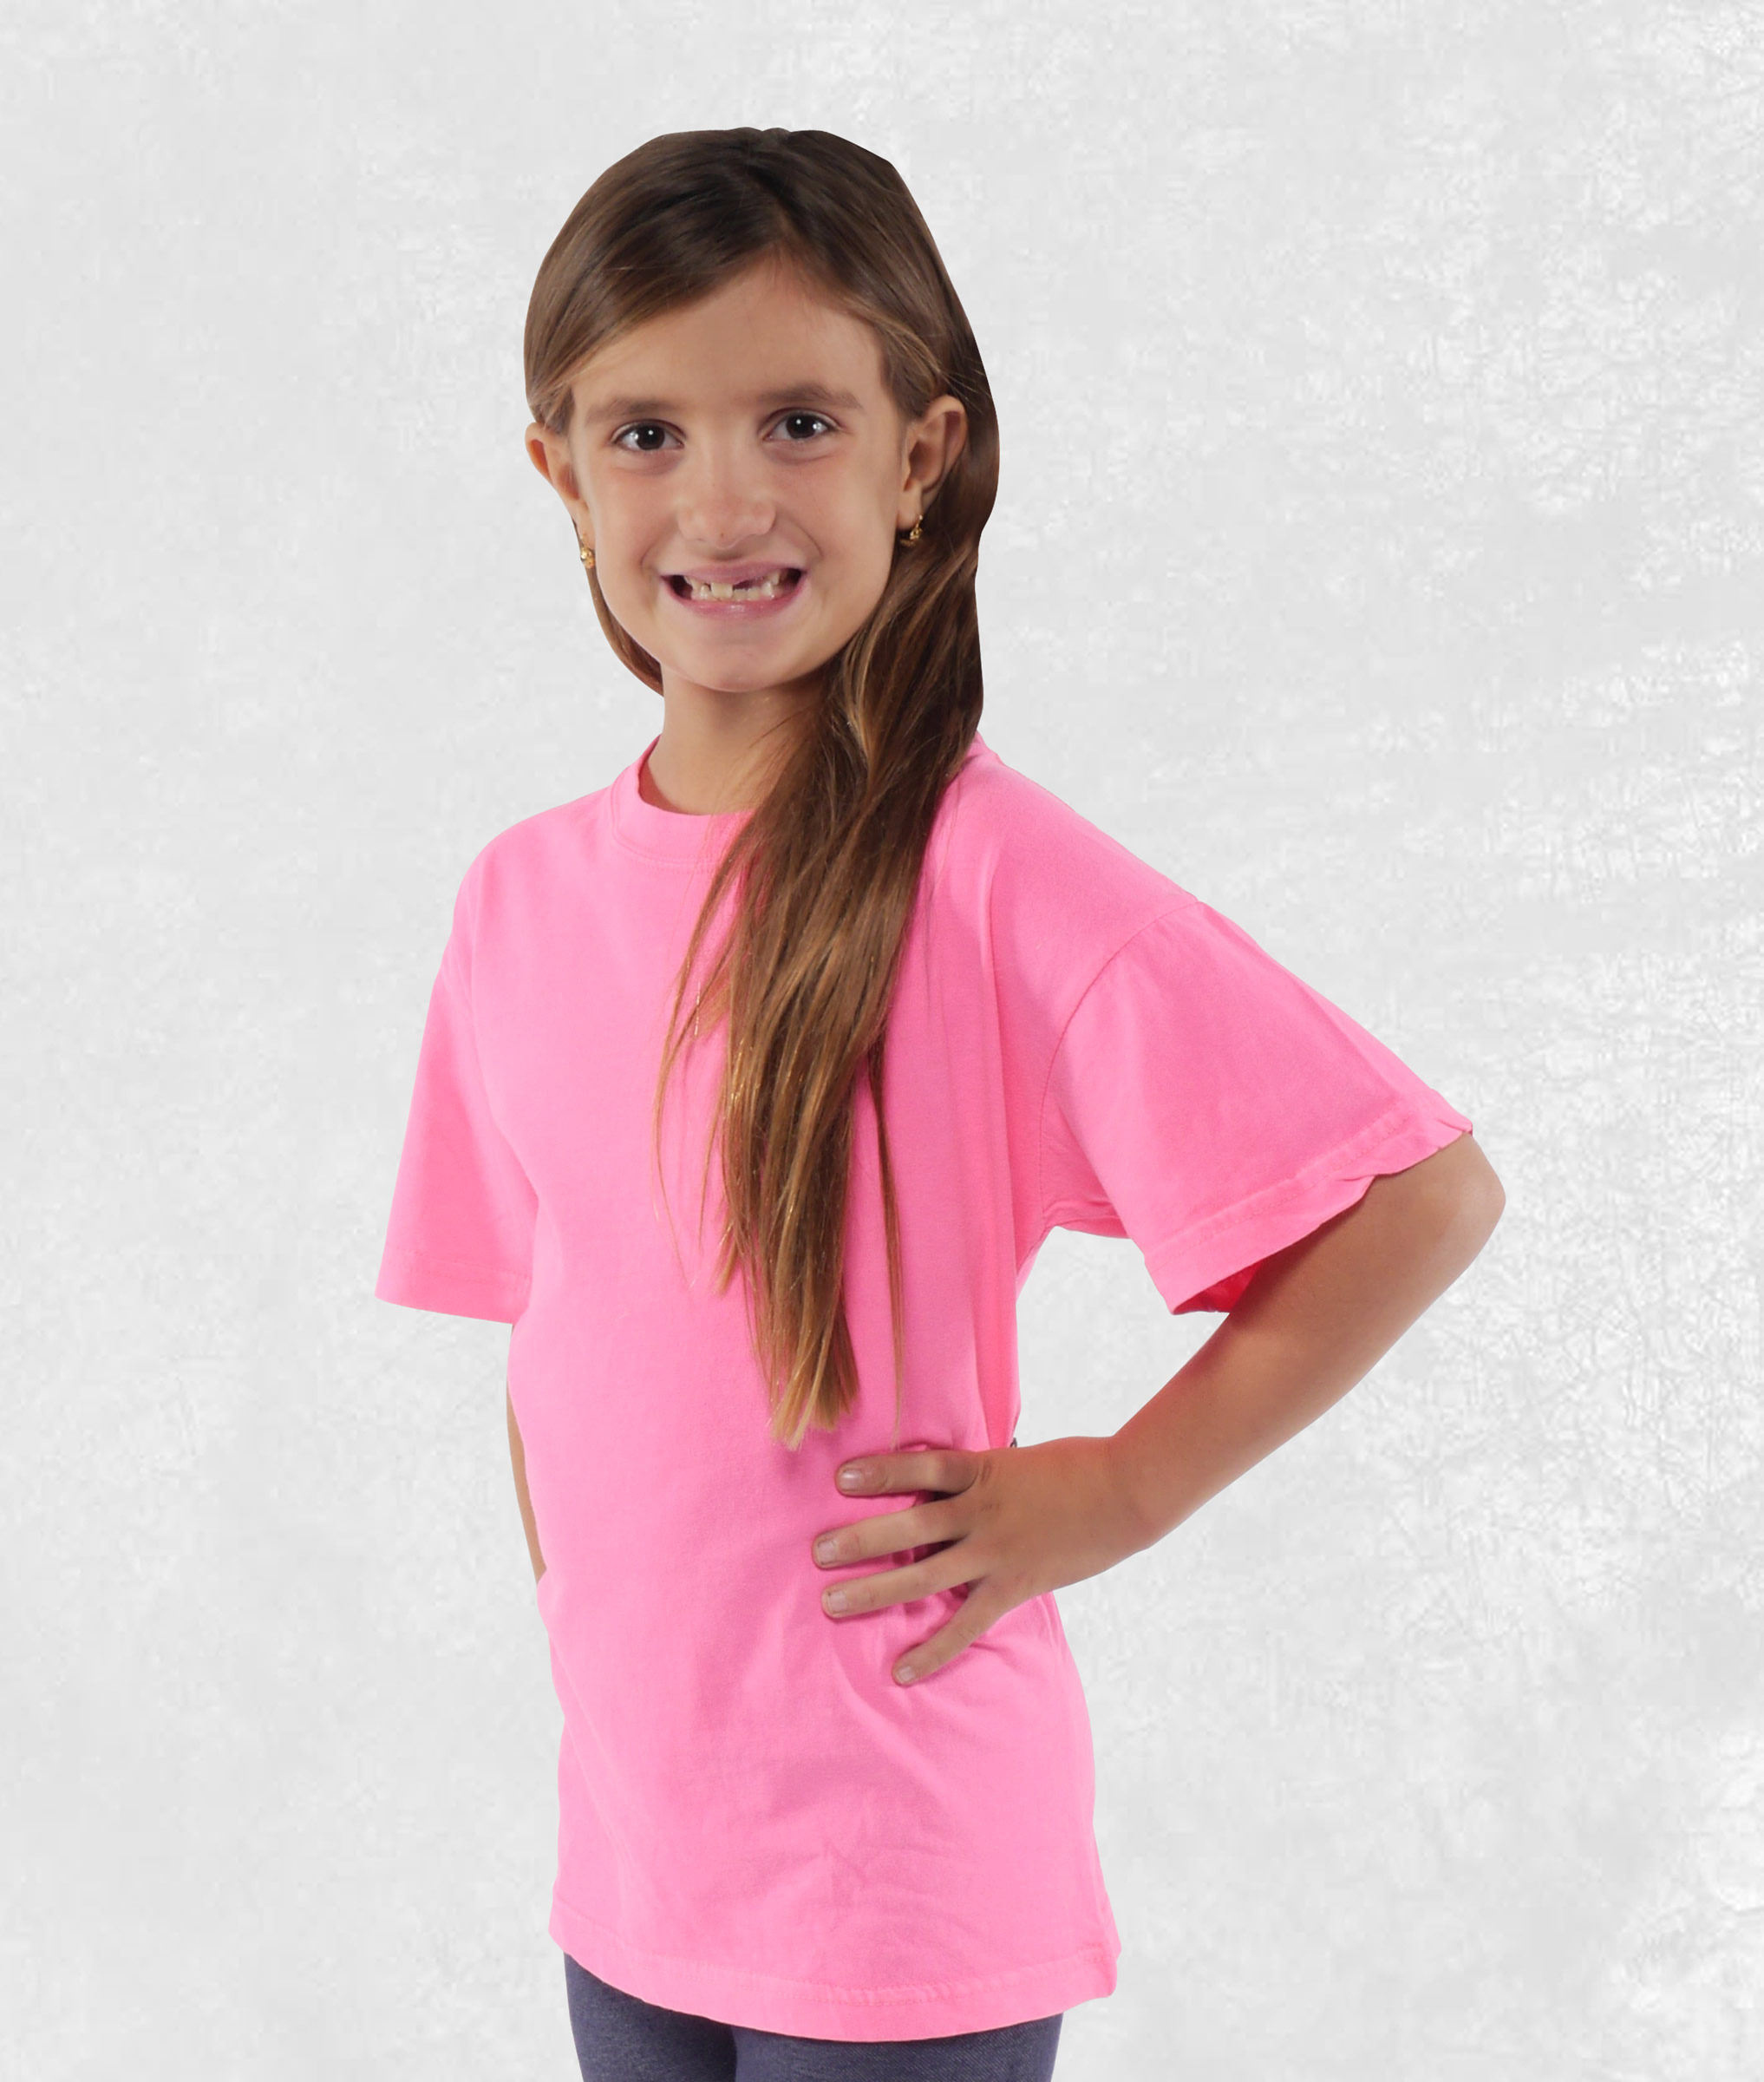 Neon Pink Youth Short Sleeve Tees